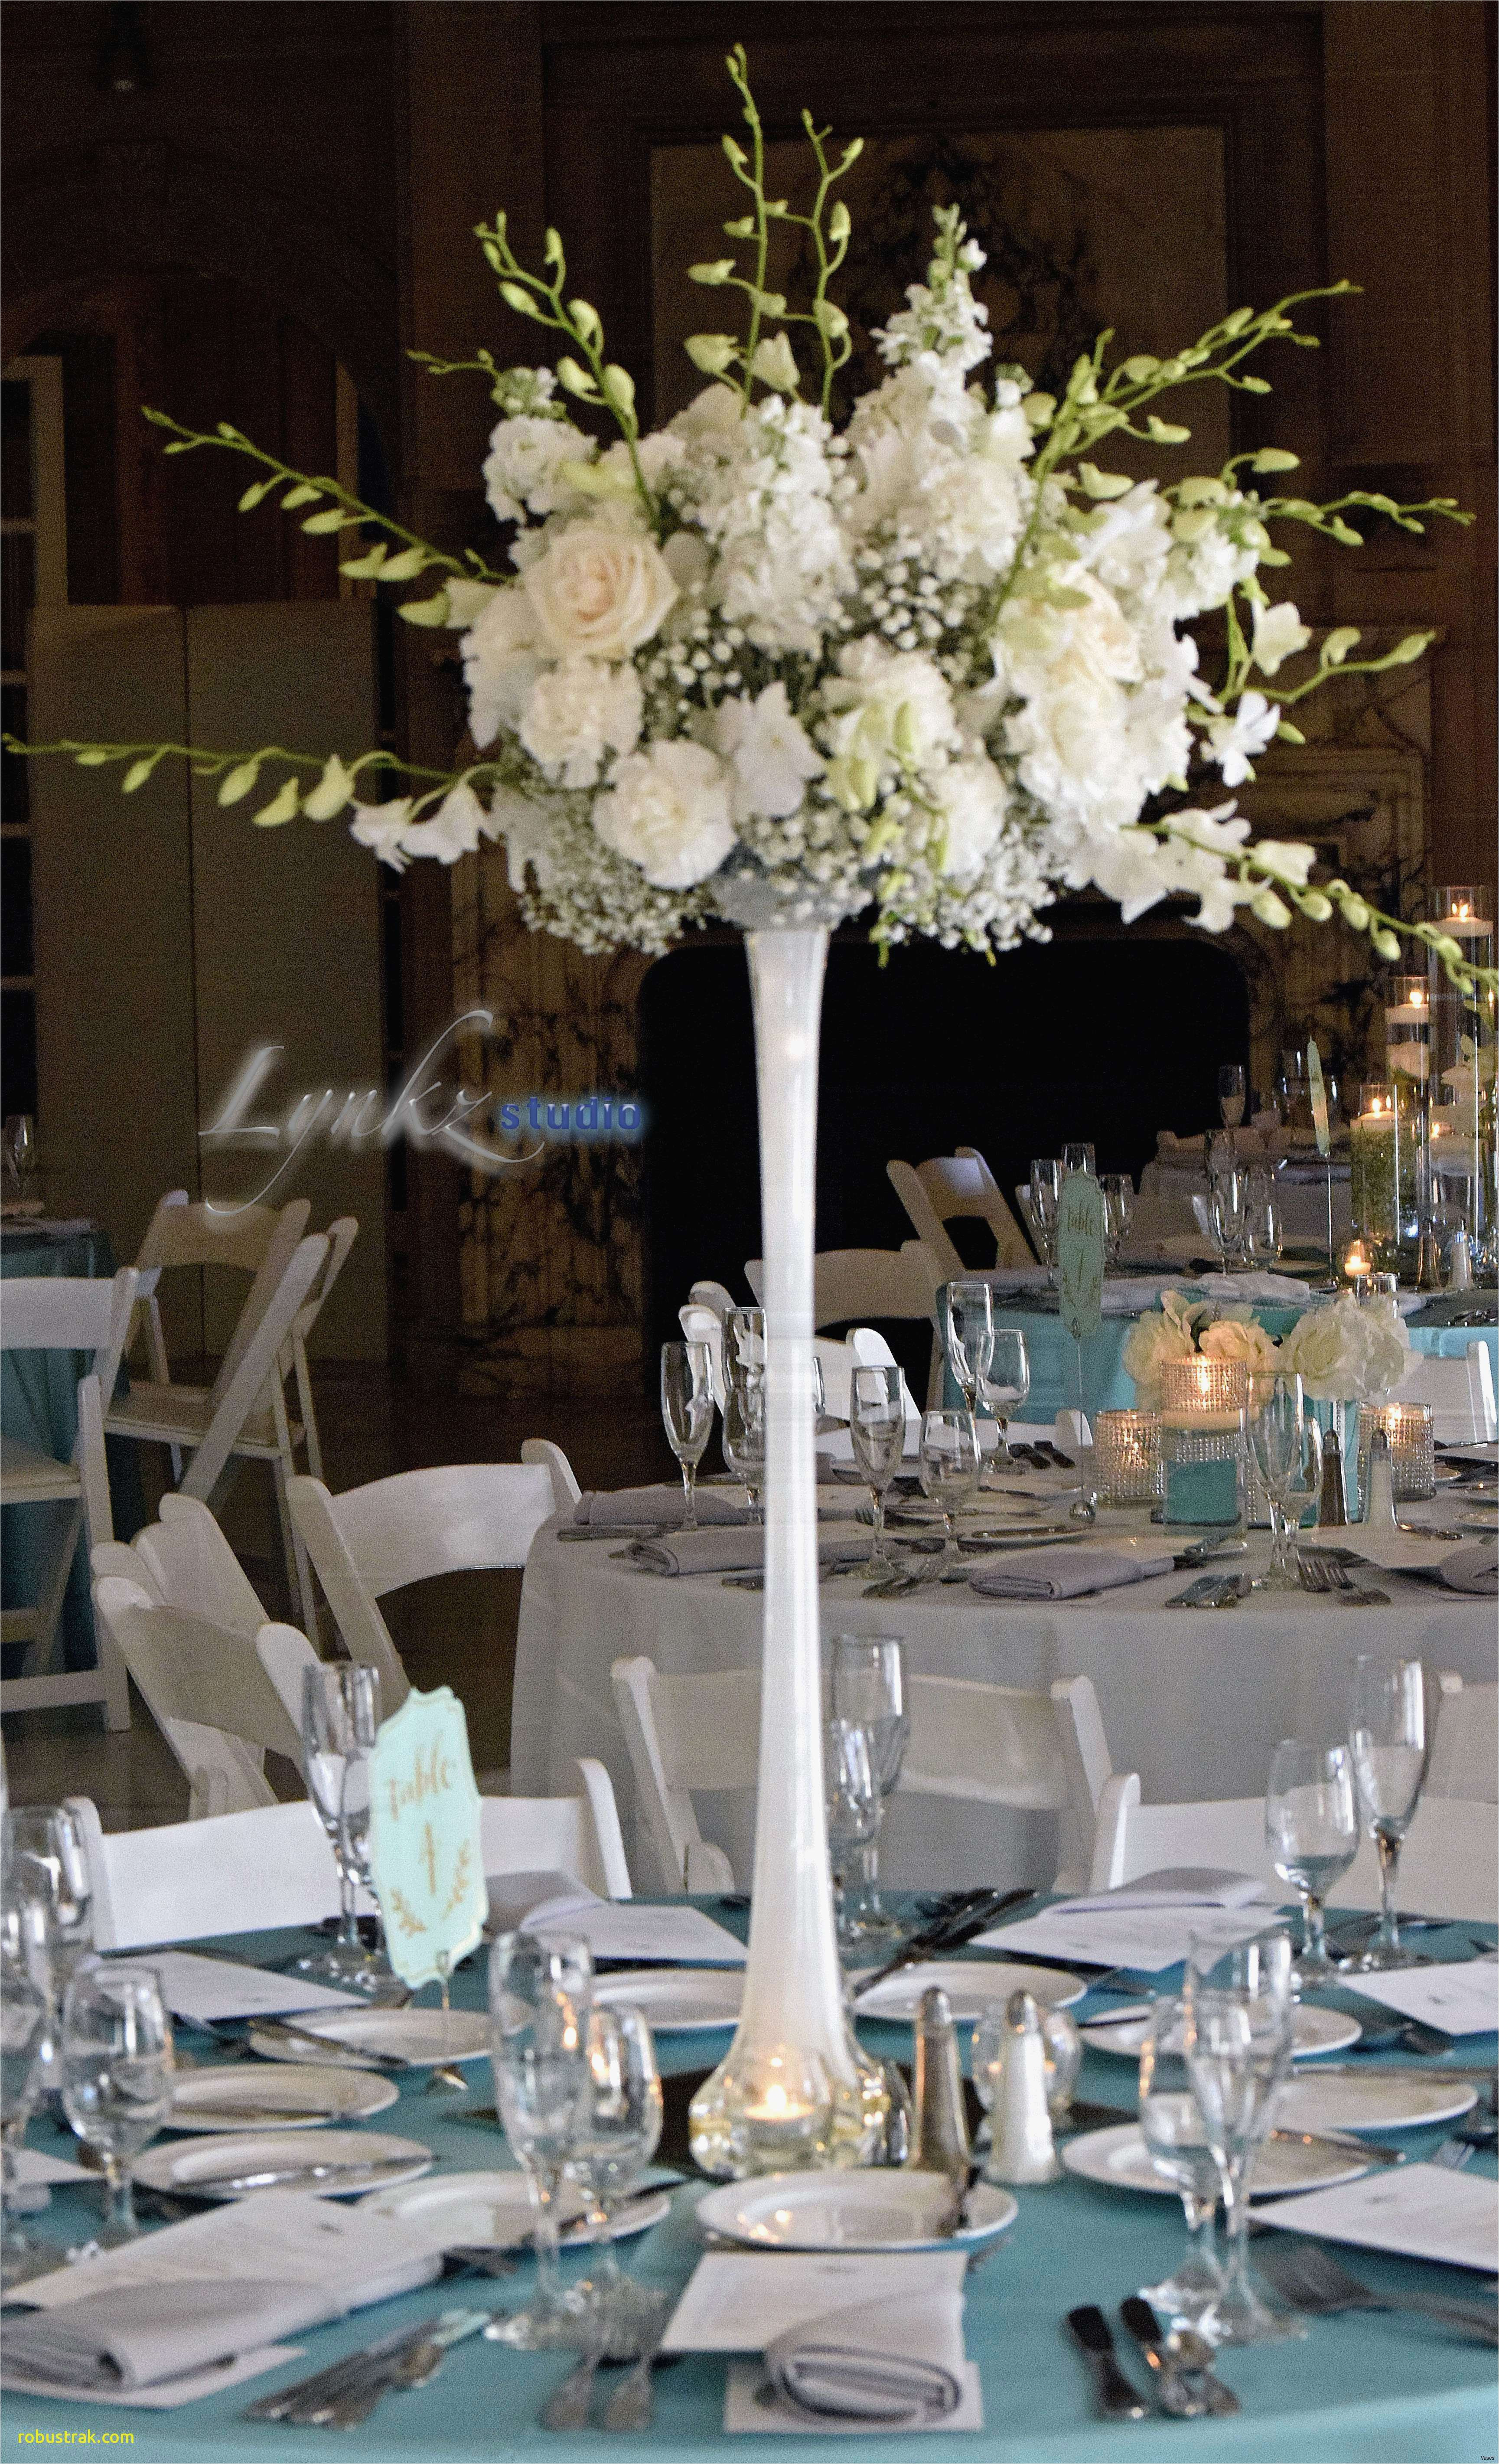 wedding flower vases of 24 best winter wedding ideas examples best proposal letter examples regarding vases eiffel tower vase lights hydrangea with grass vasei 0d scheme design ideas light decoration examples